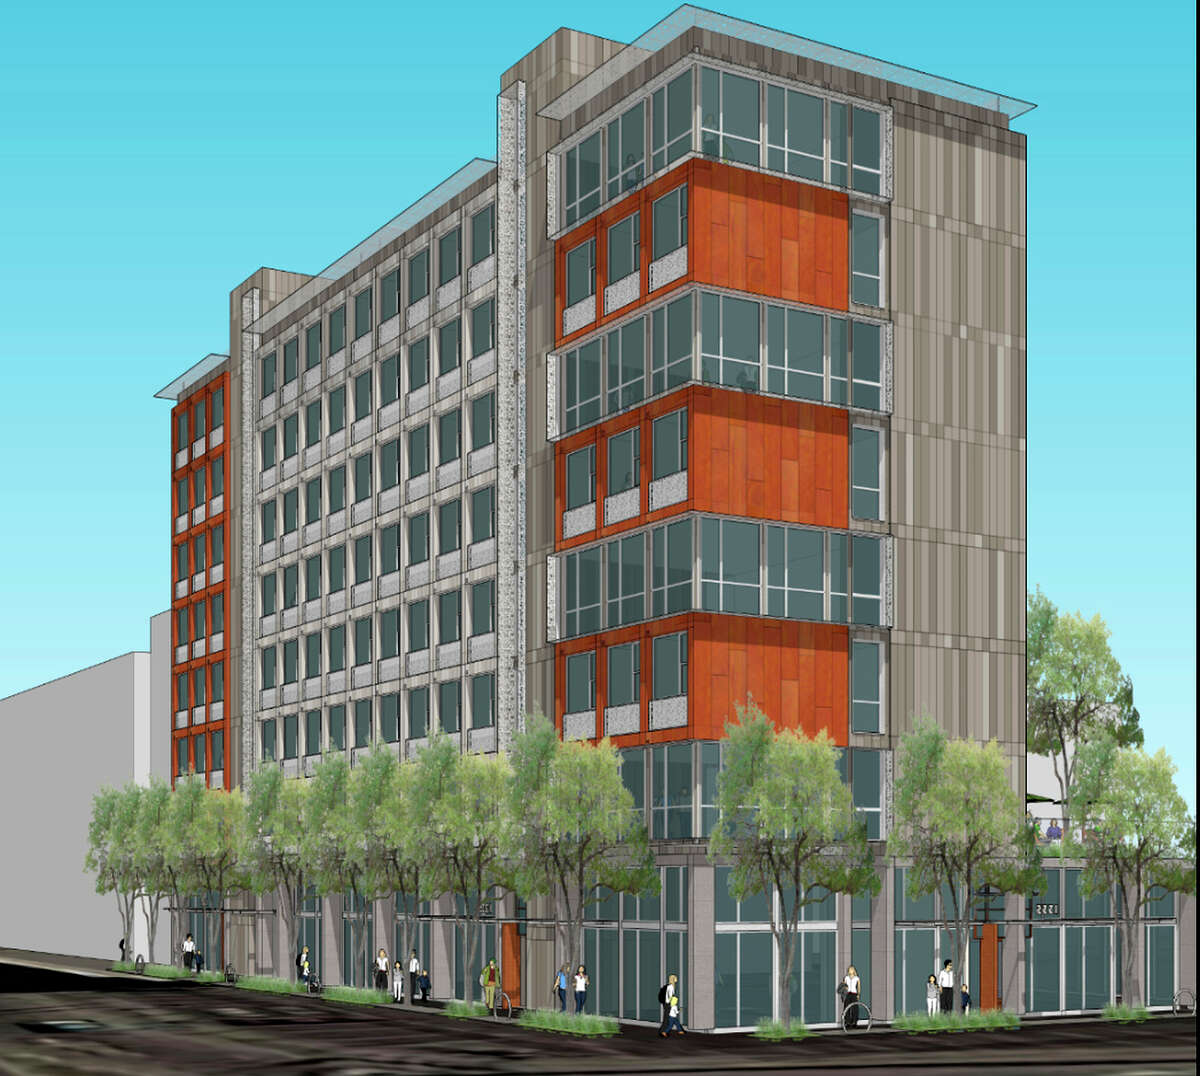 The 200-unit project is proposed for the Department of Public Works' Cesar Chavez Street parking lot site.